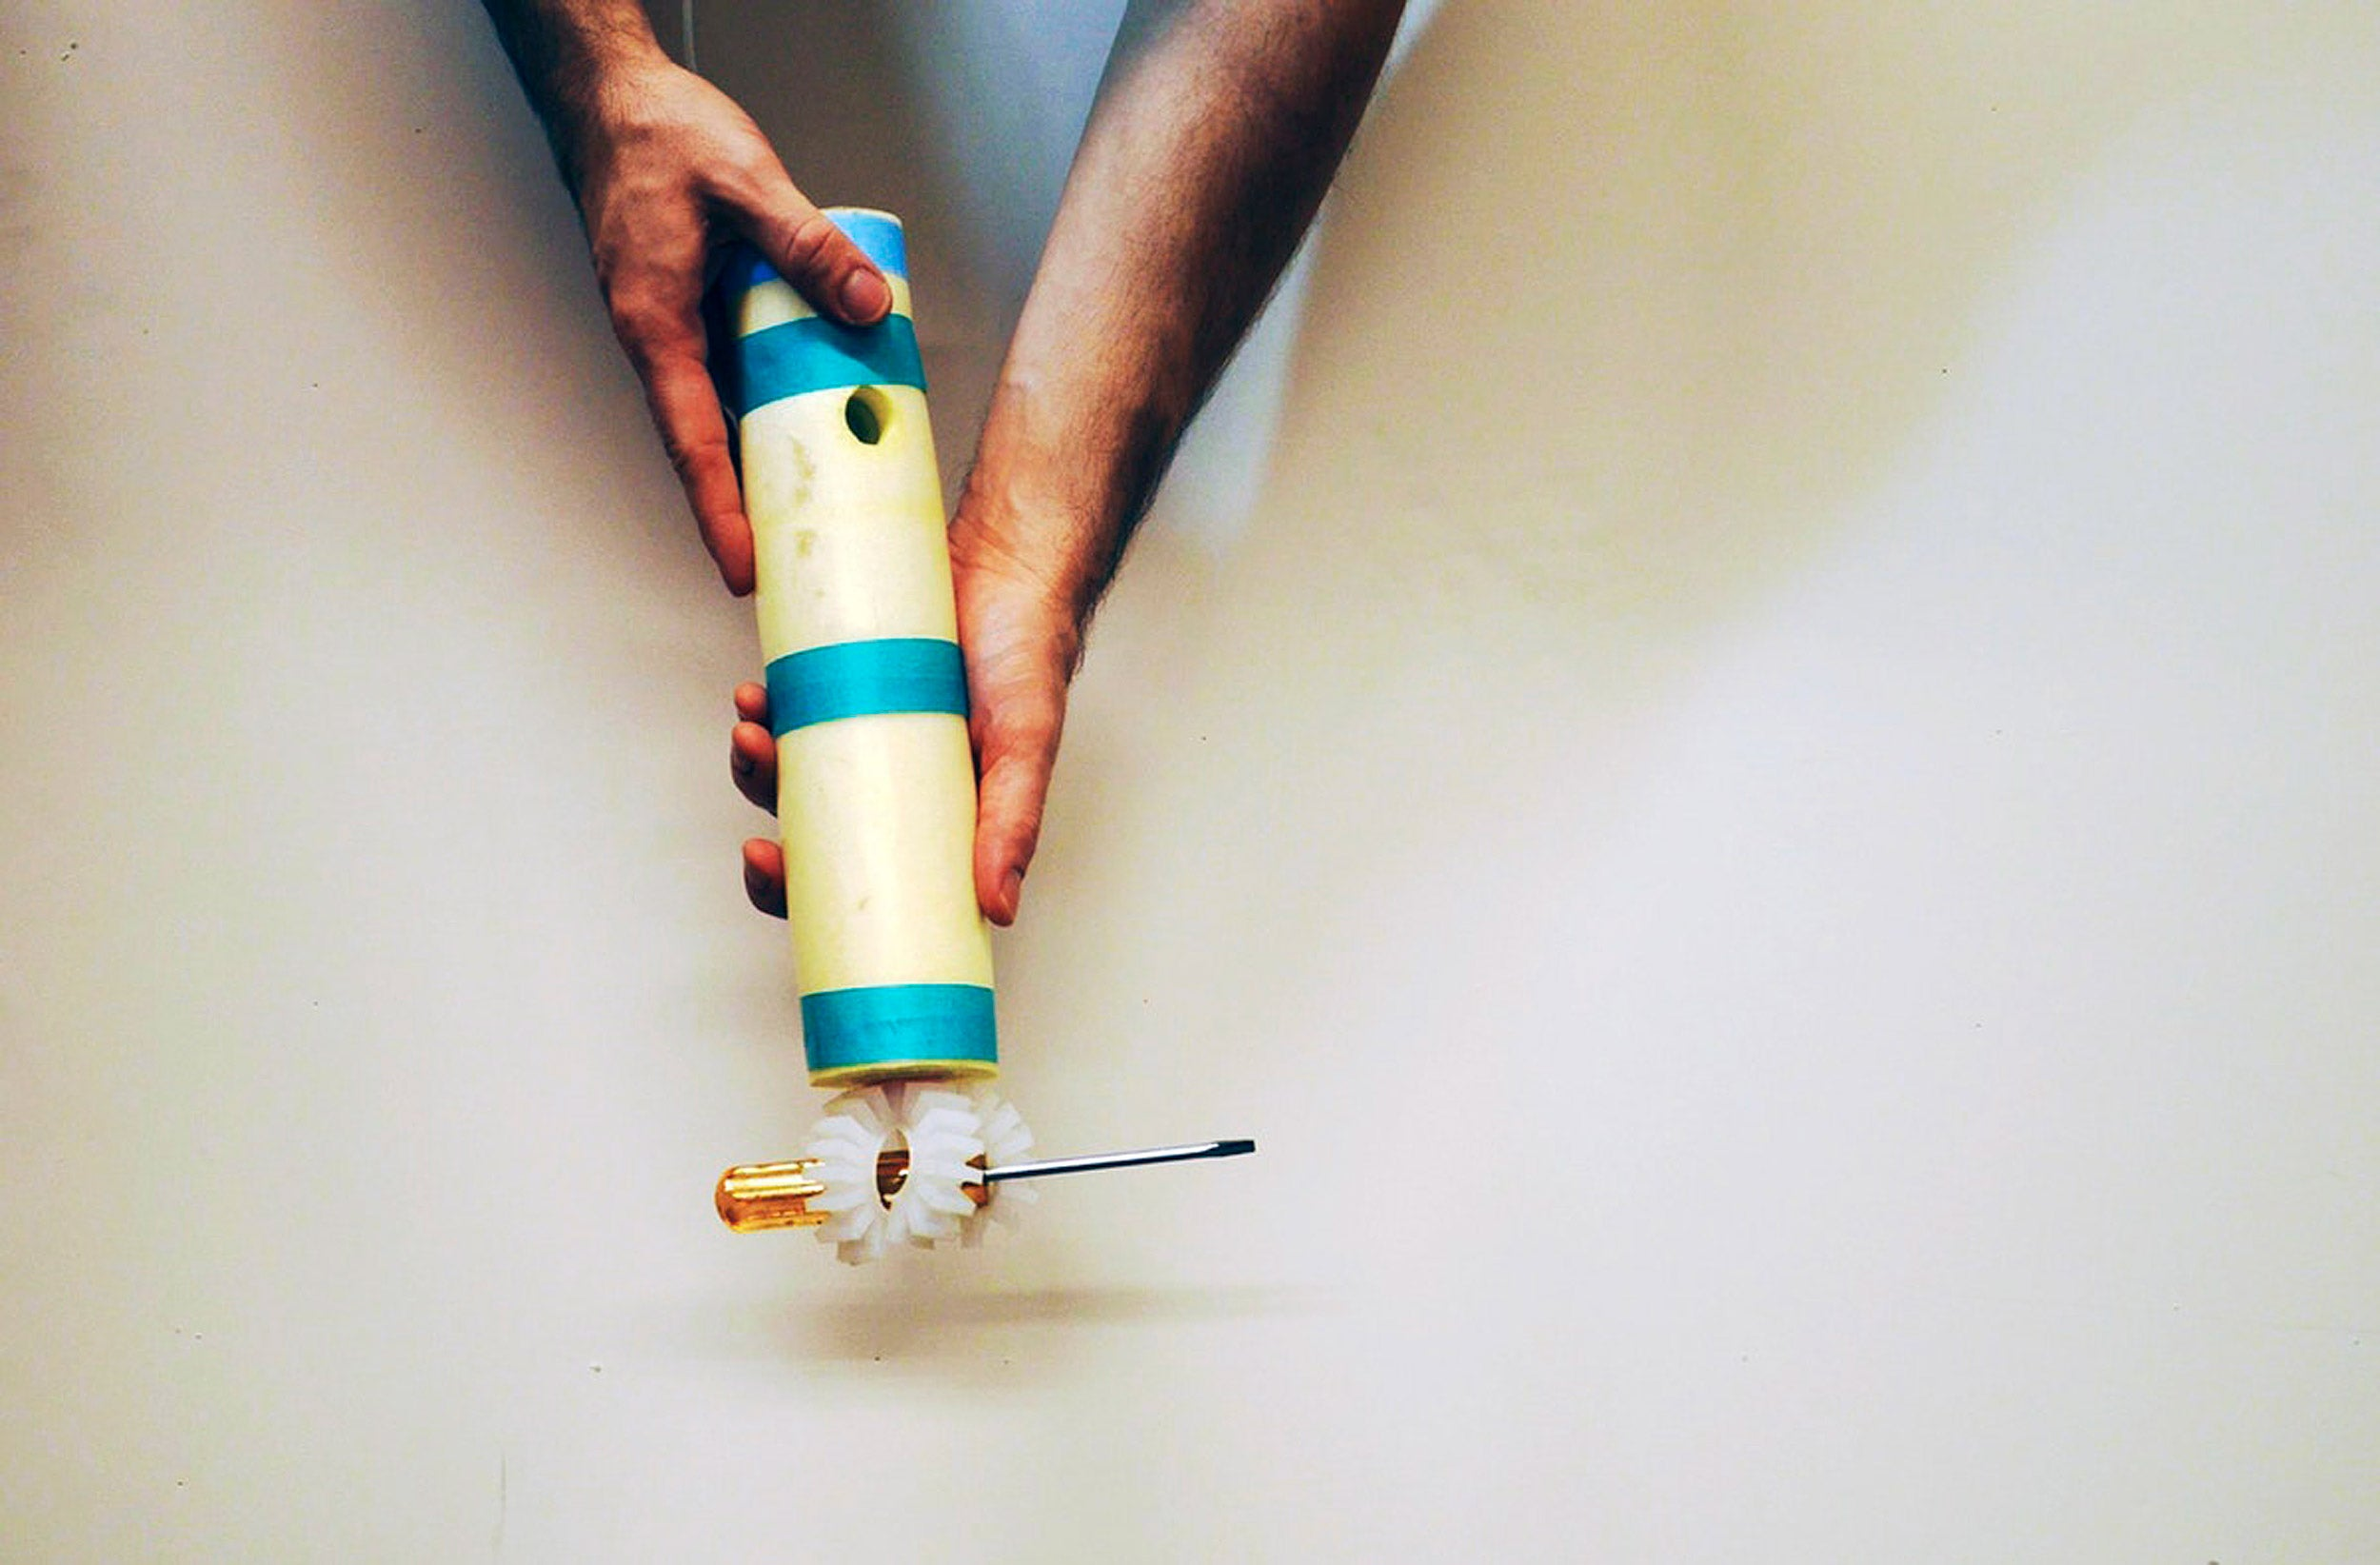 The toggle gripper holds a screwdriver.